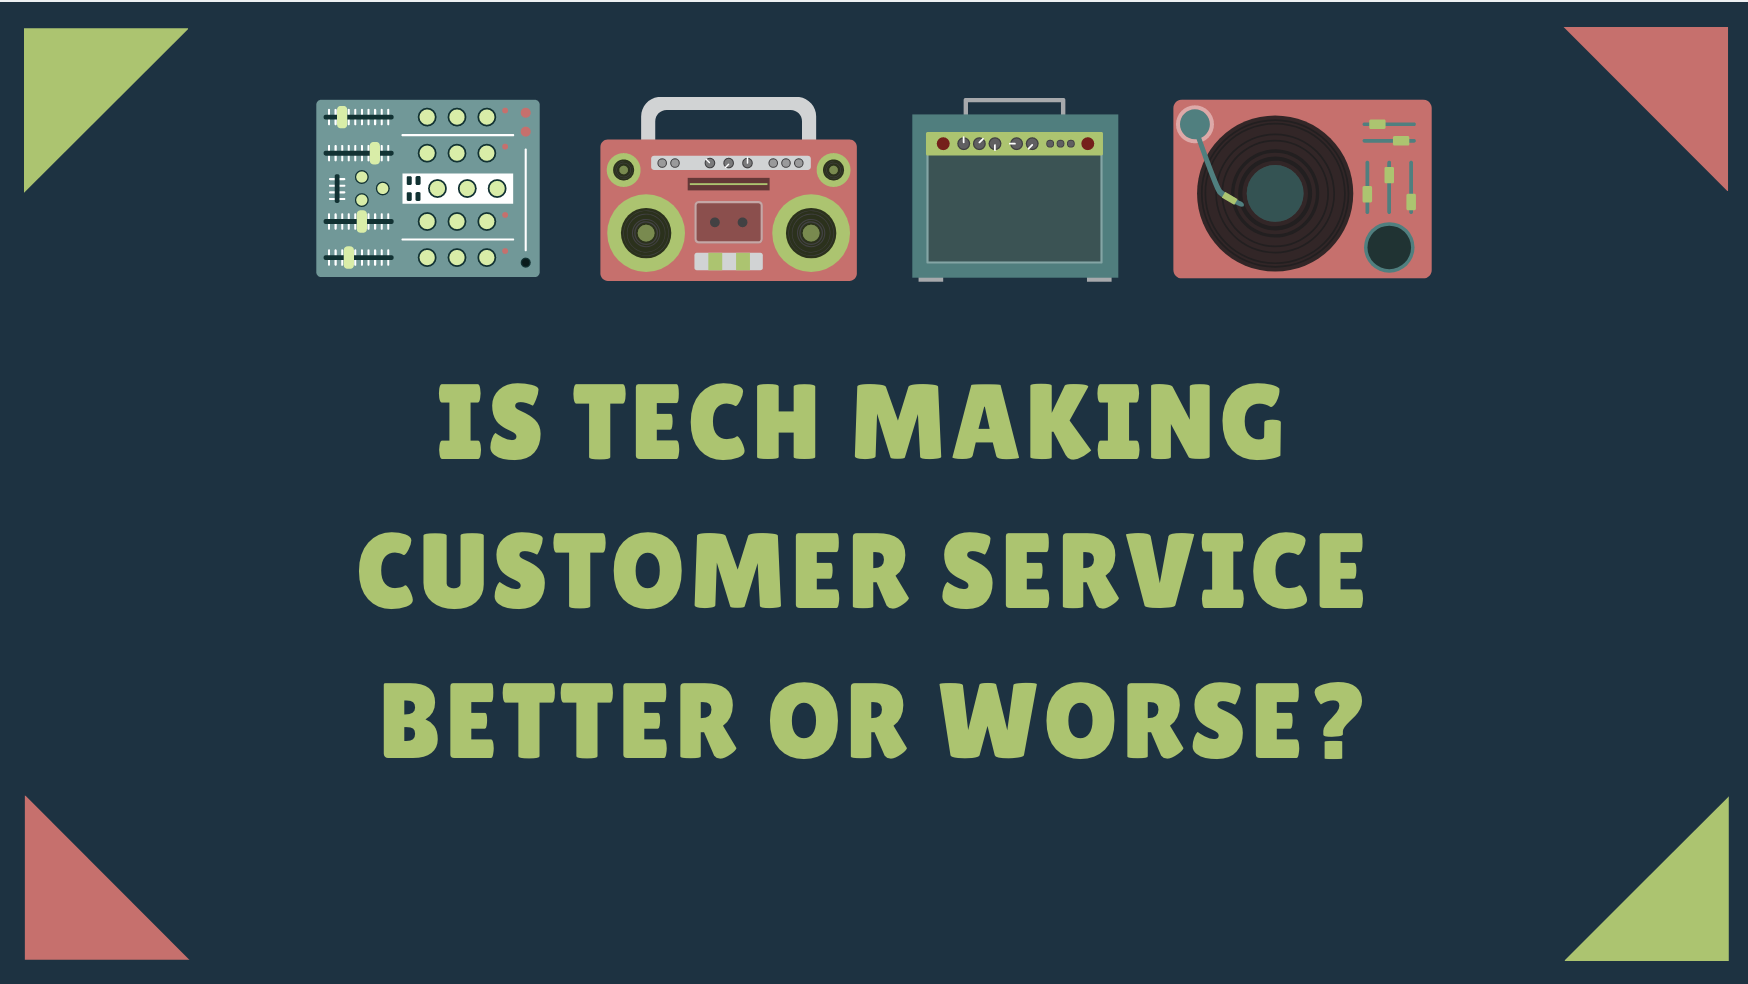 Is Tech Making Customer Service Better or Worse